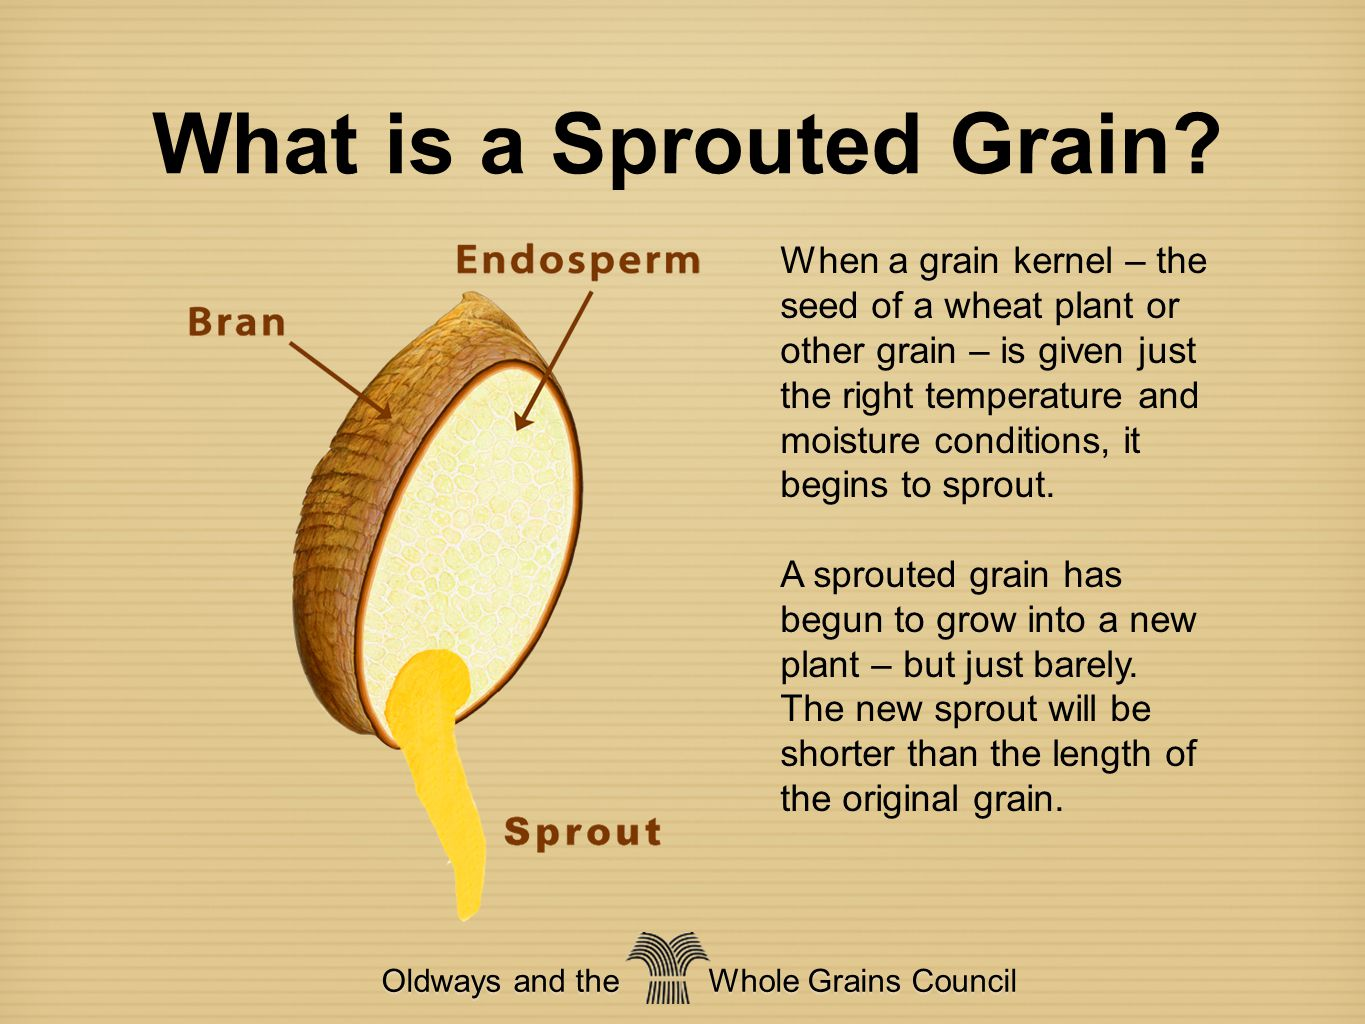 What is a Sprouted Grain